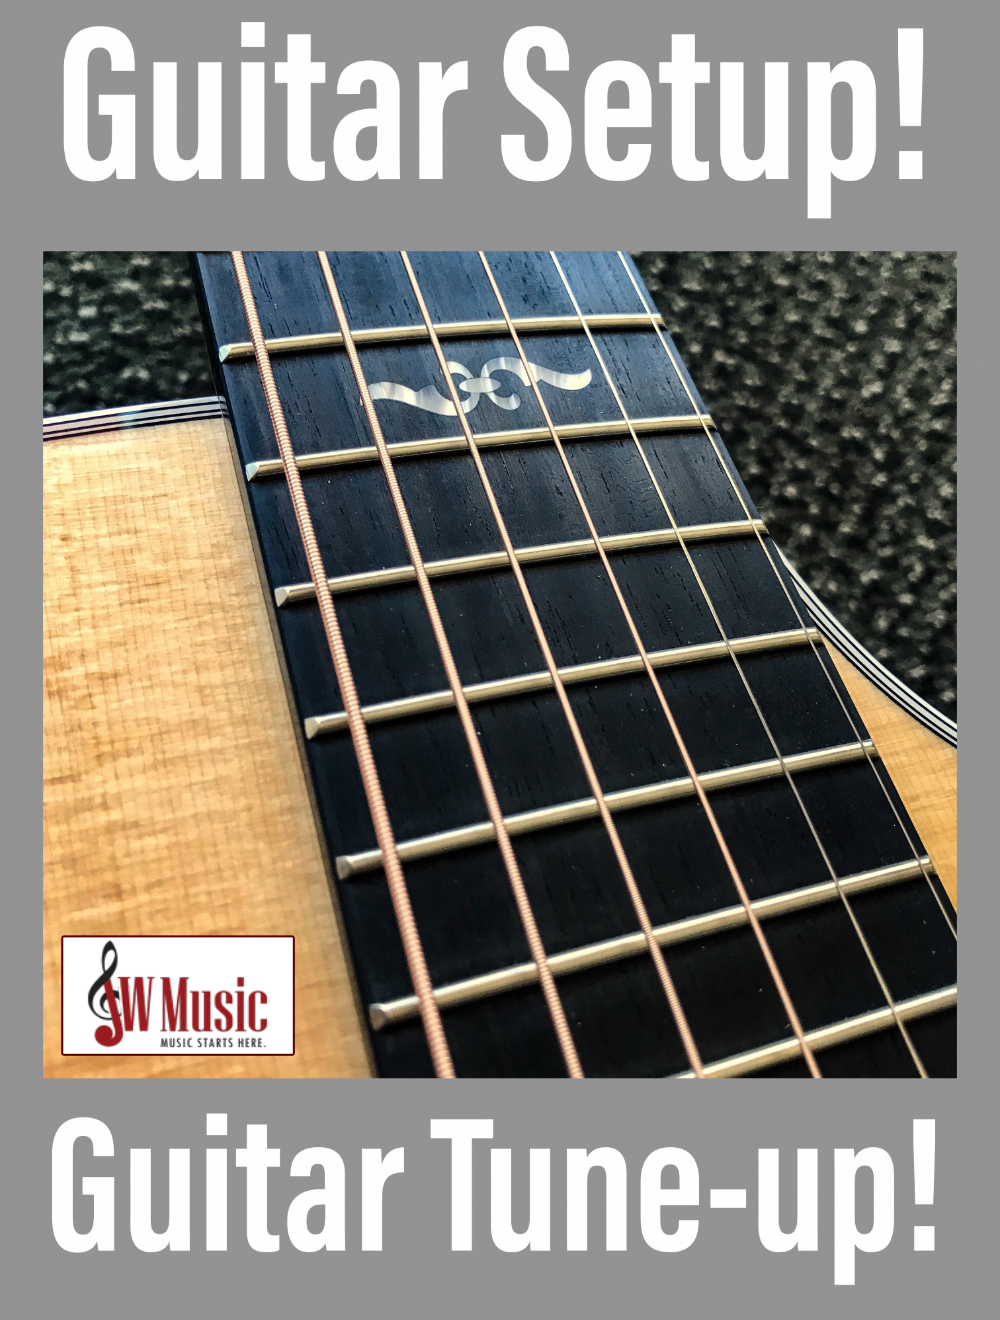 Guitar Tune-ups at JW Music!